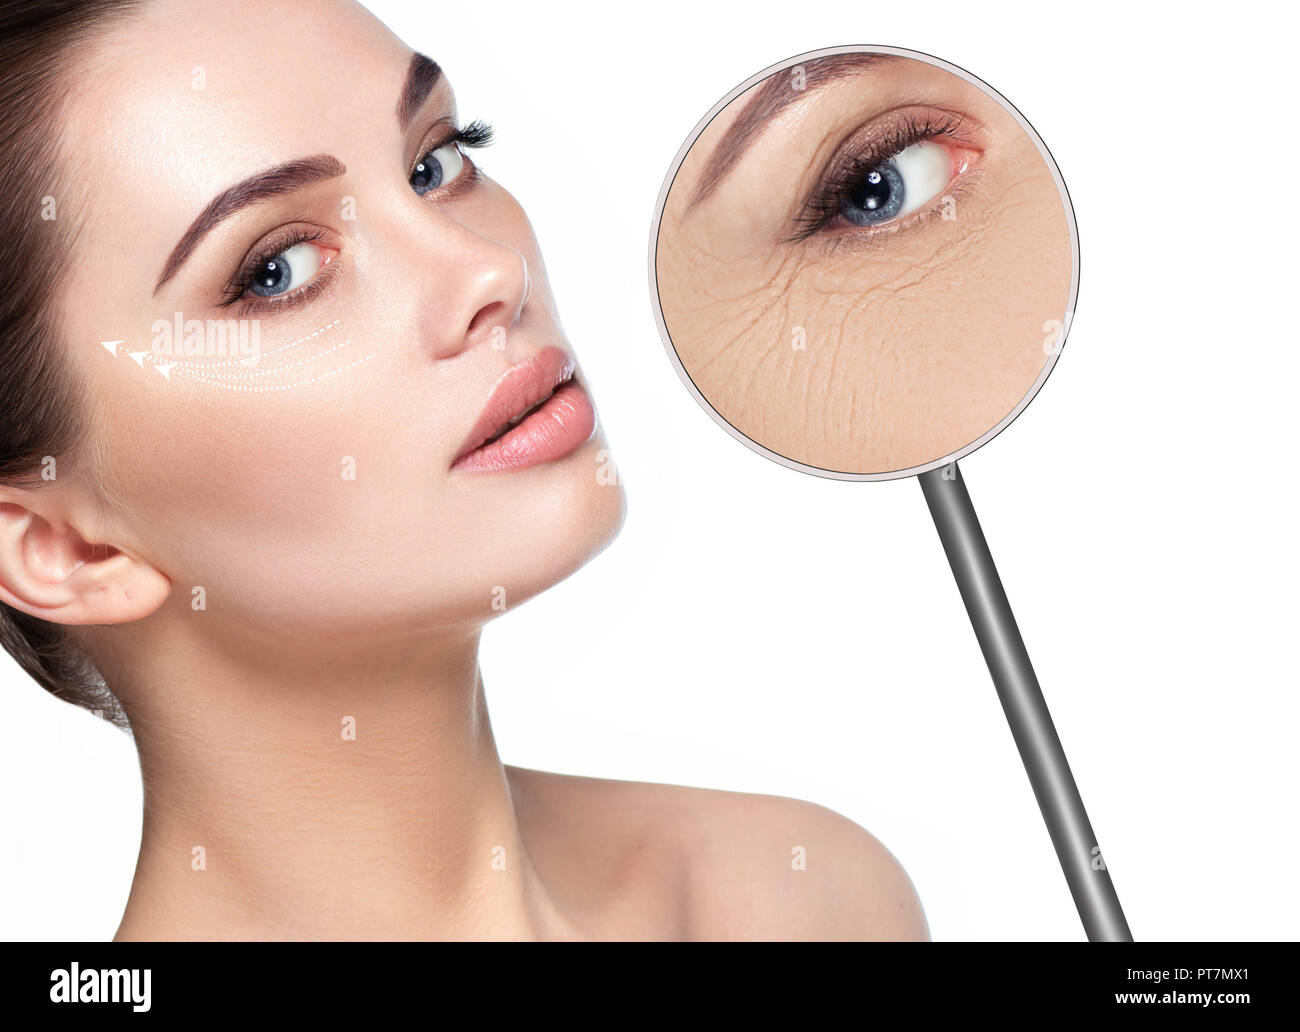 magnifying glass showing Wrinkles around the eyes - Stock Image